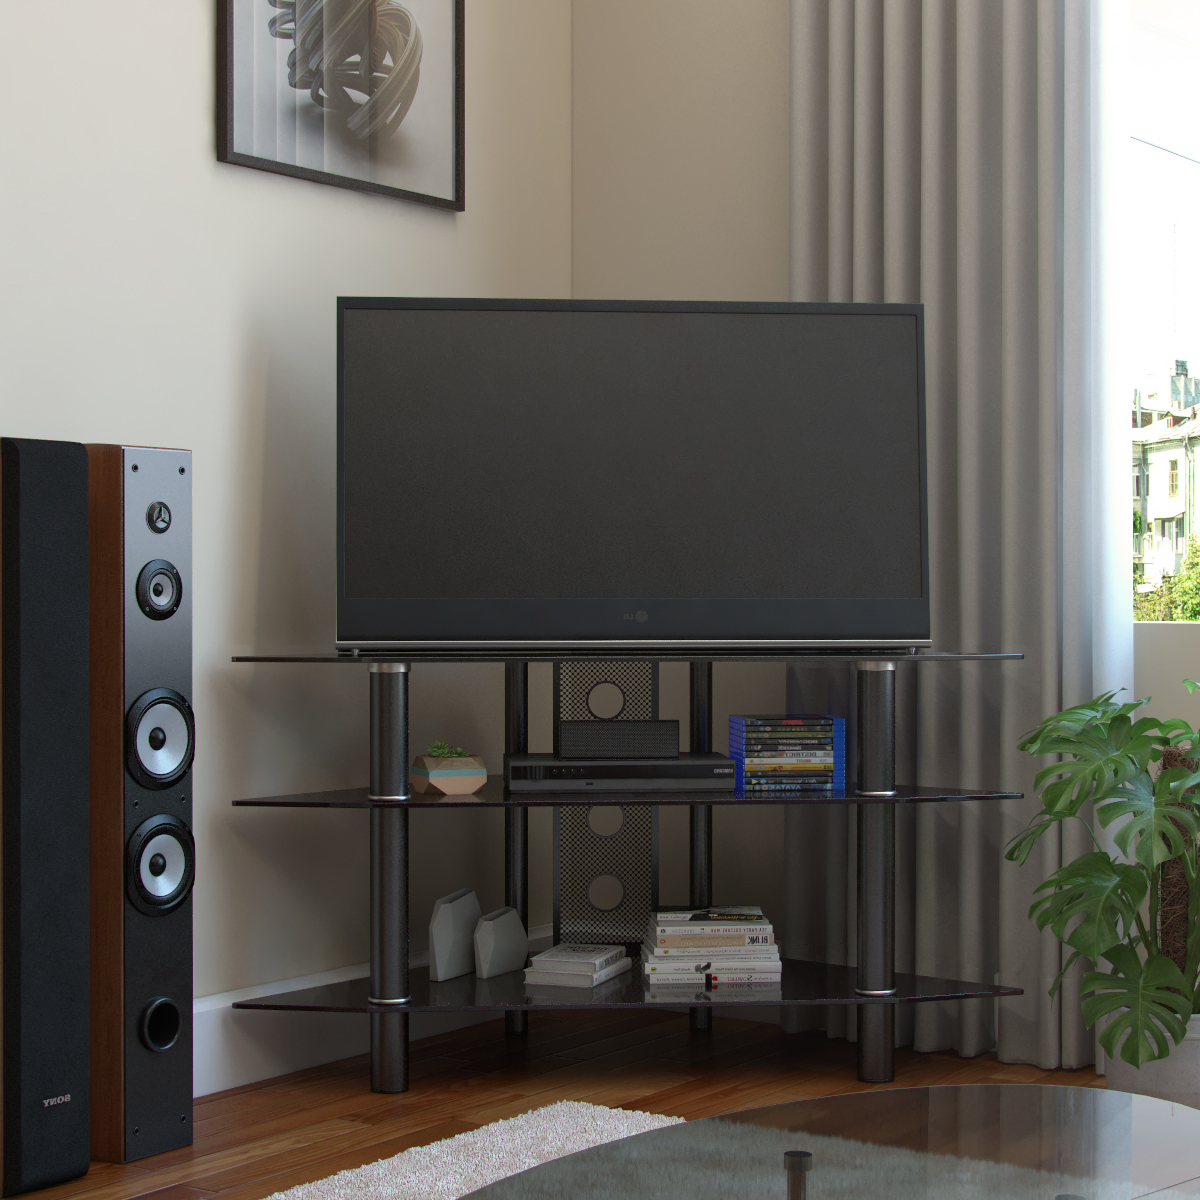 Tv Stands With Regard To Well Liked Ruby 44 Inch Corner Glass Tv Stand In Black With Cable (View 16 of 16)